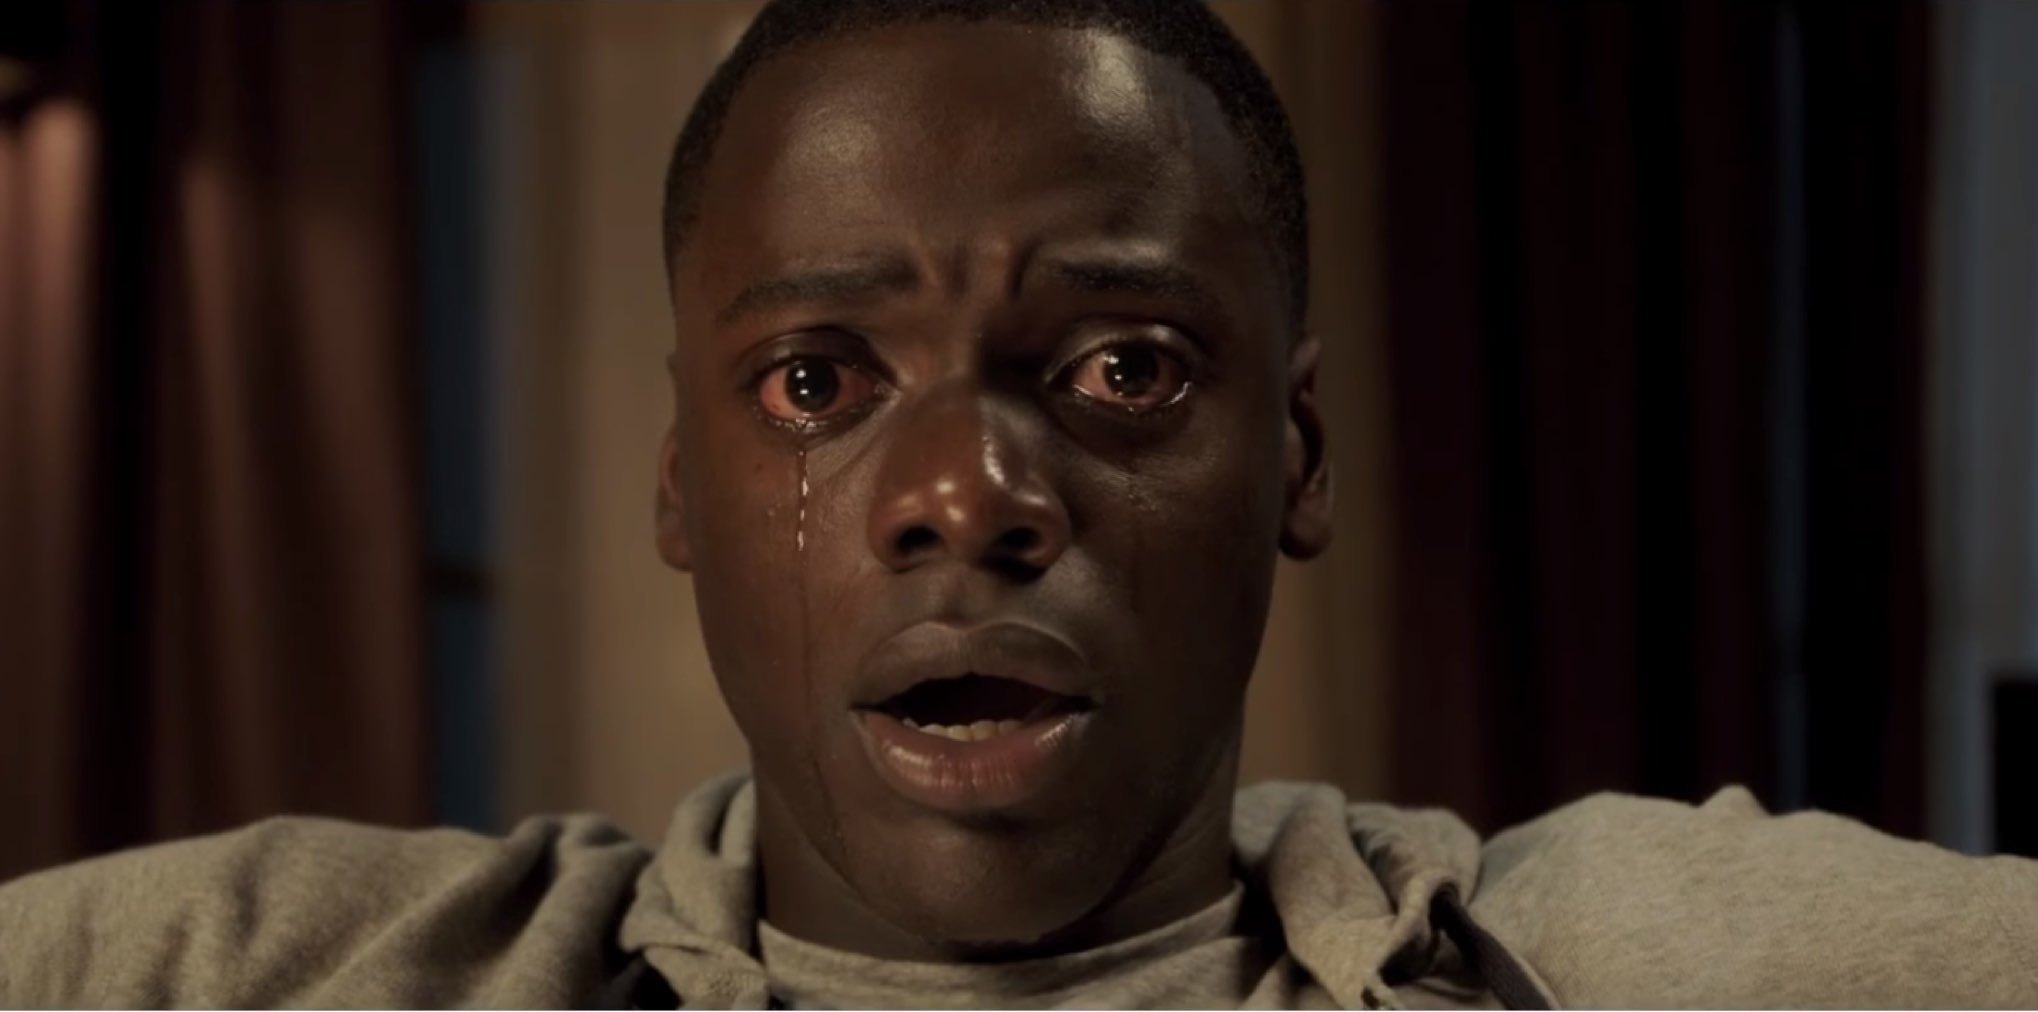 Get Out is a horror film about benevolent racism  It's spine